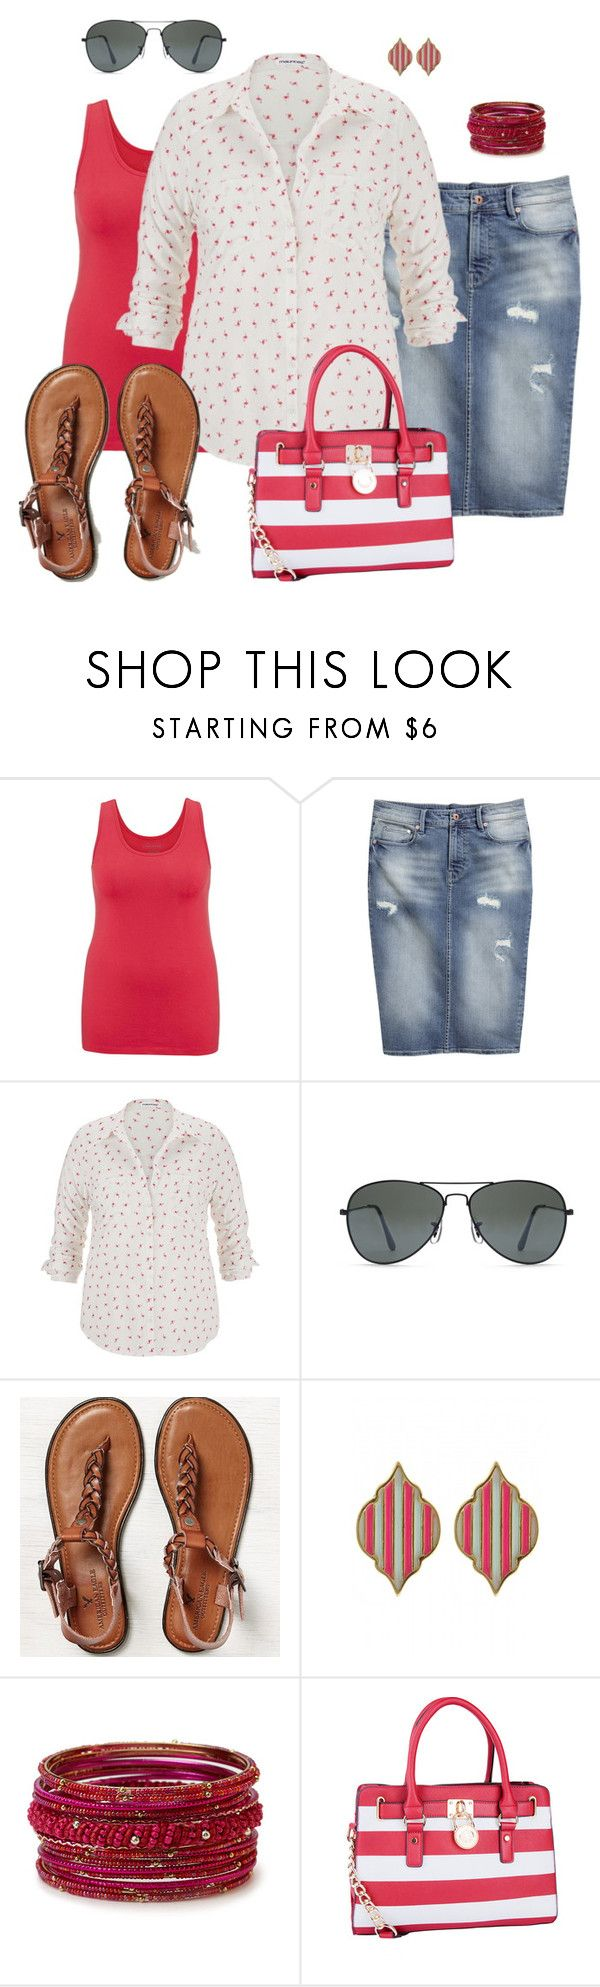 """""""Flamingo Top- Plus Size Outfit"""" by boswell0617 ❤ liked on Polyvore featuring maurices, H&M, Forever 21, American Eagle Outfitters, Fornash and MKF Collection"""